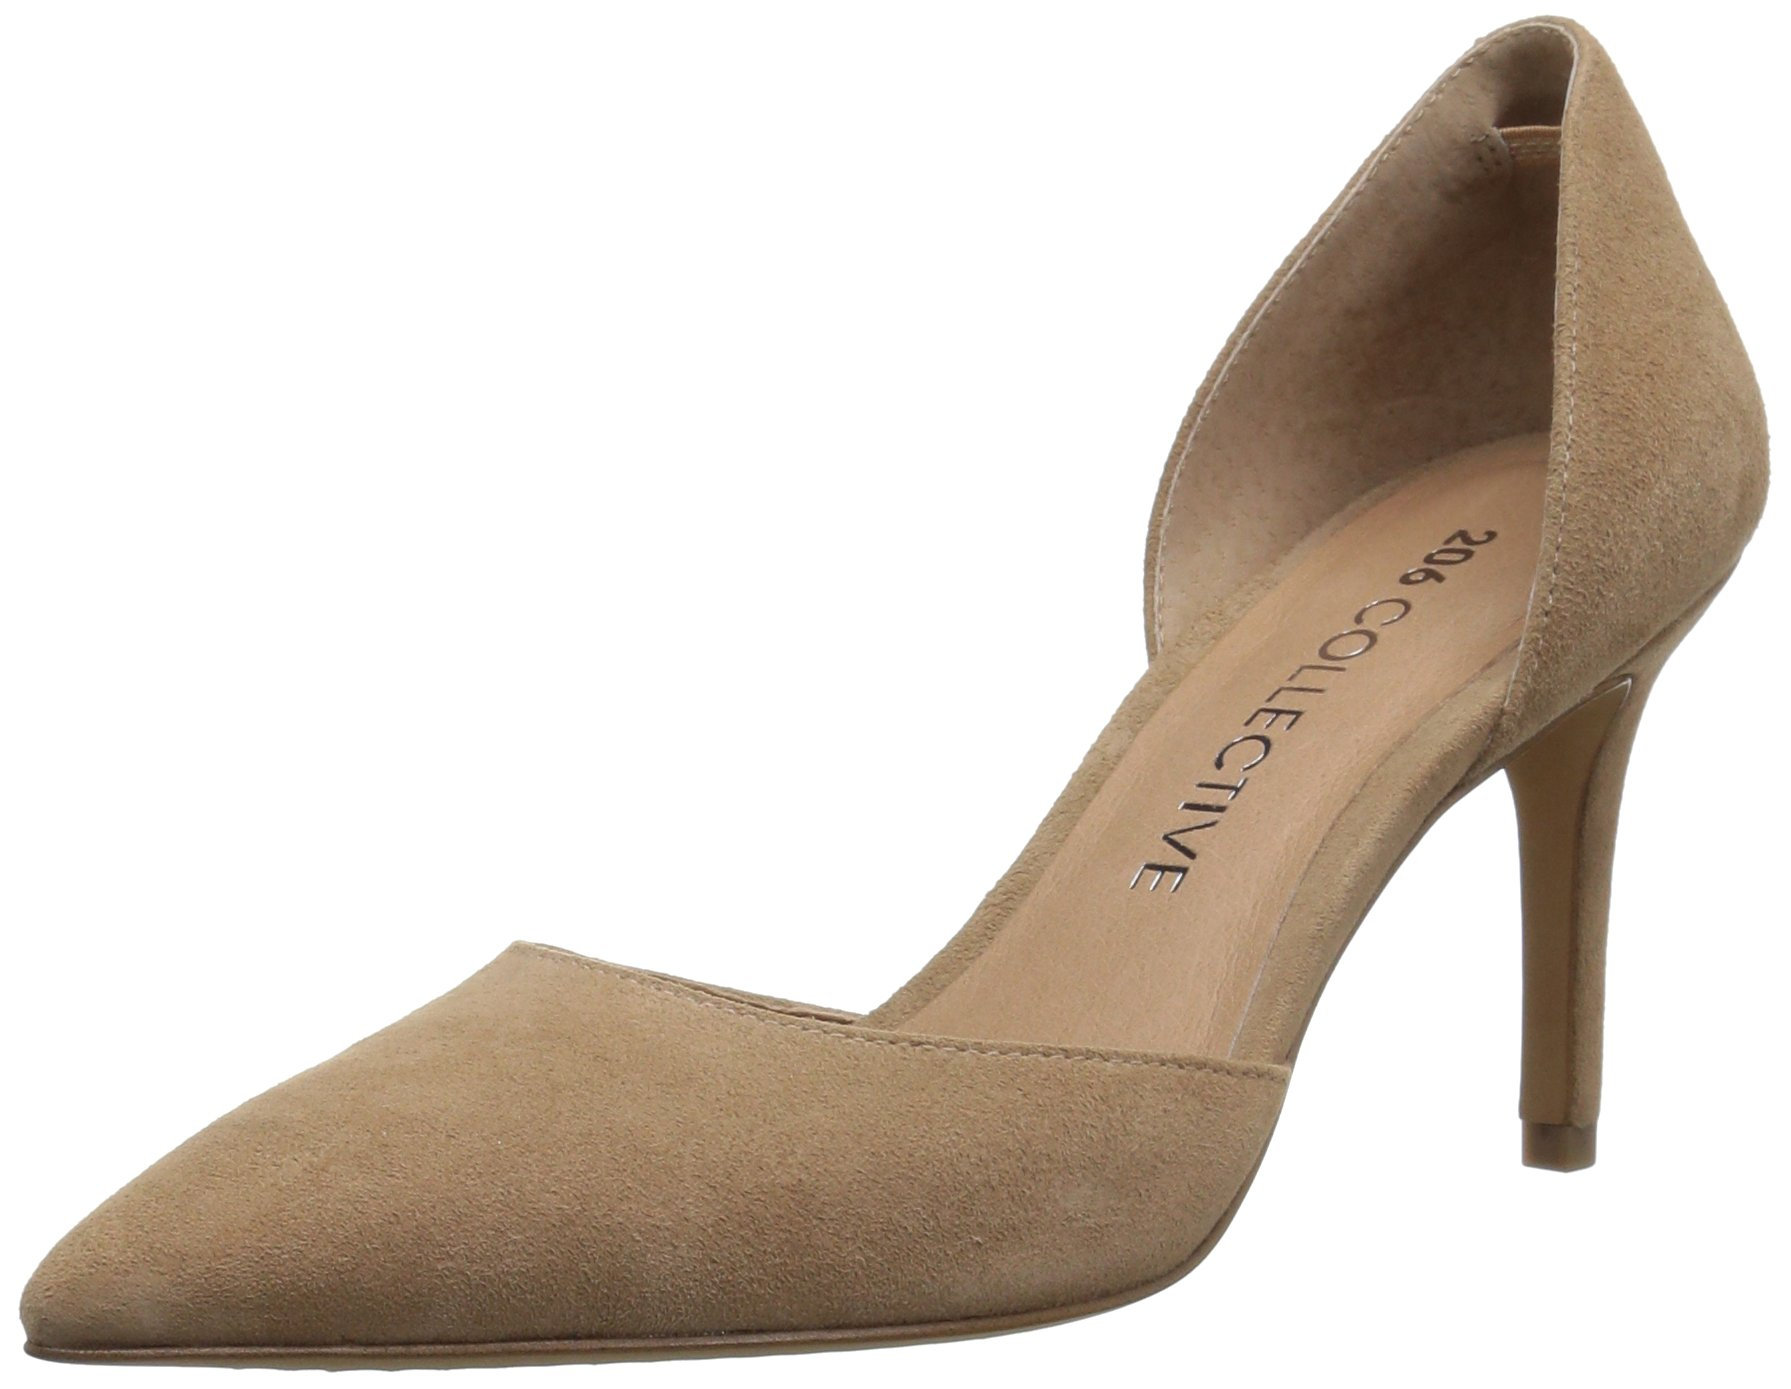 206 Collective Women's Adelaide D'Orsay Dress Pump, Caramel Suede, 6 B US